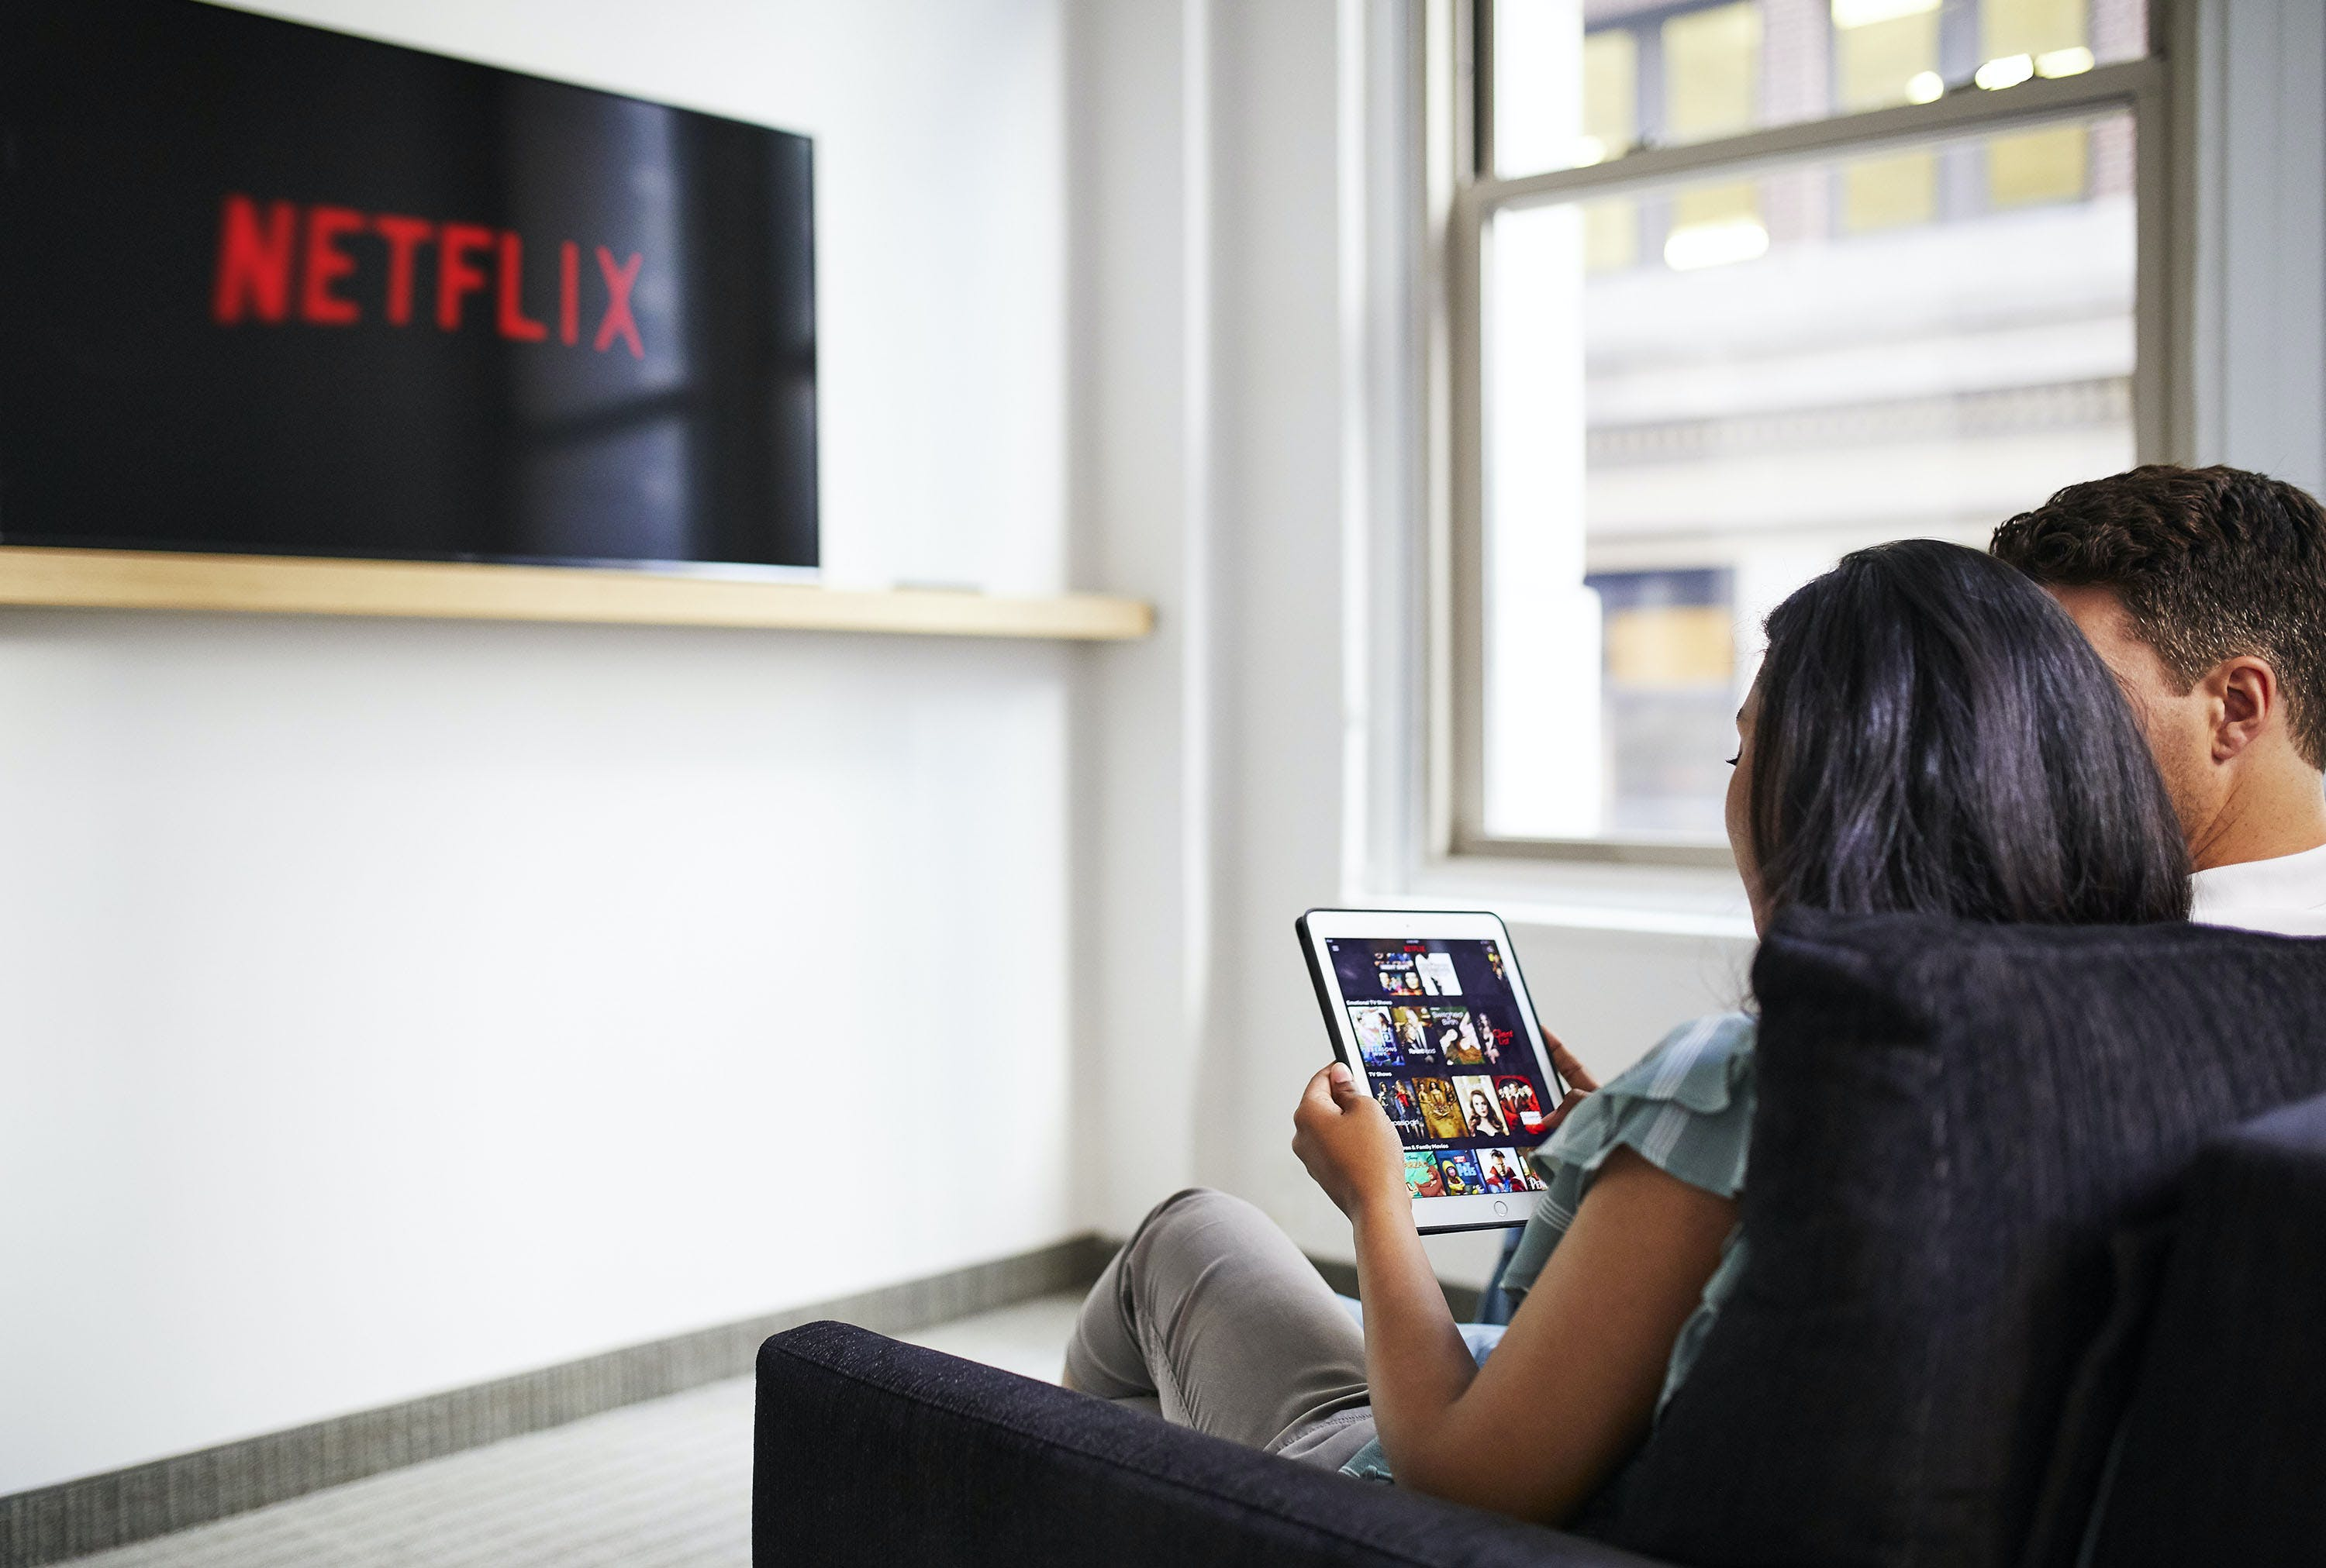 Netflix on the in-room TV at Club Quarters Hotel, Wall Street